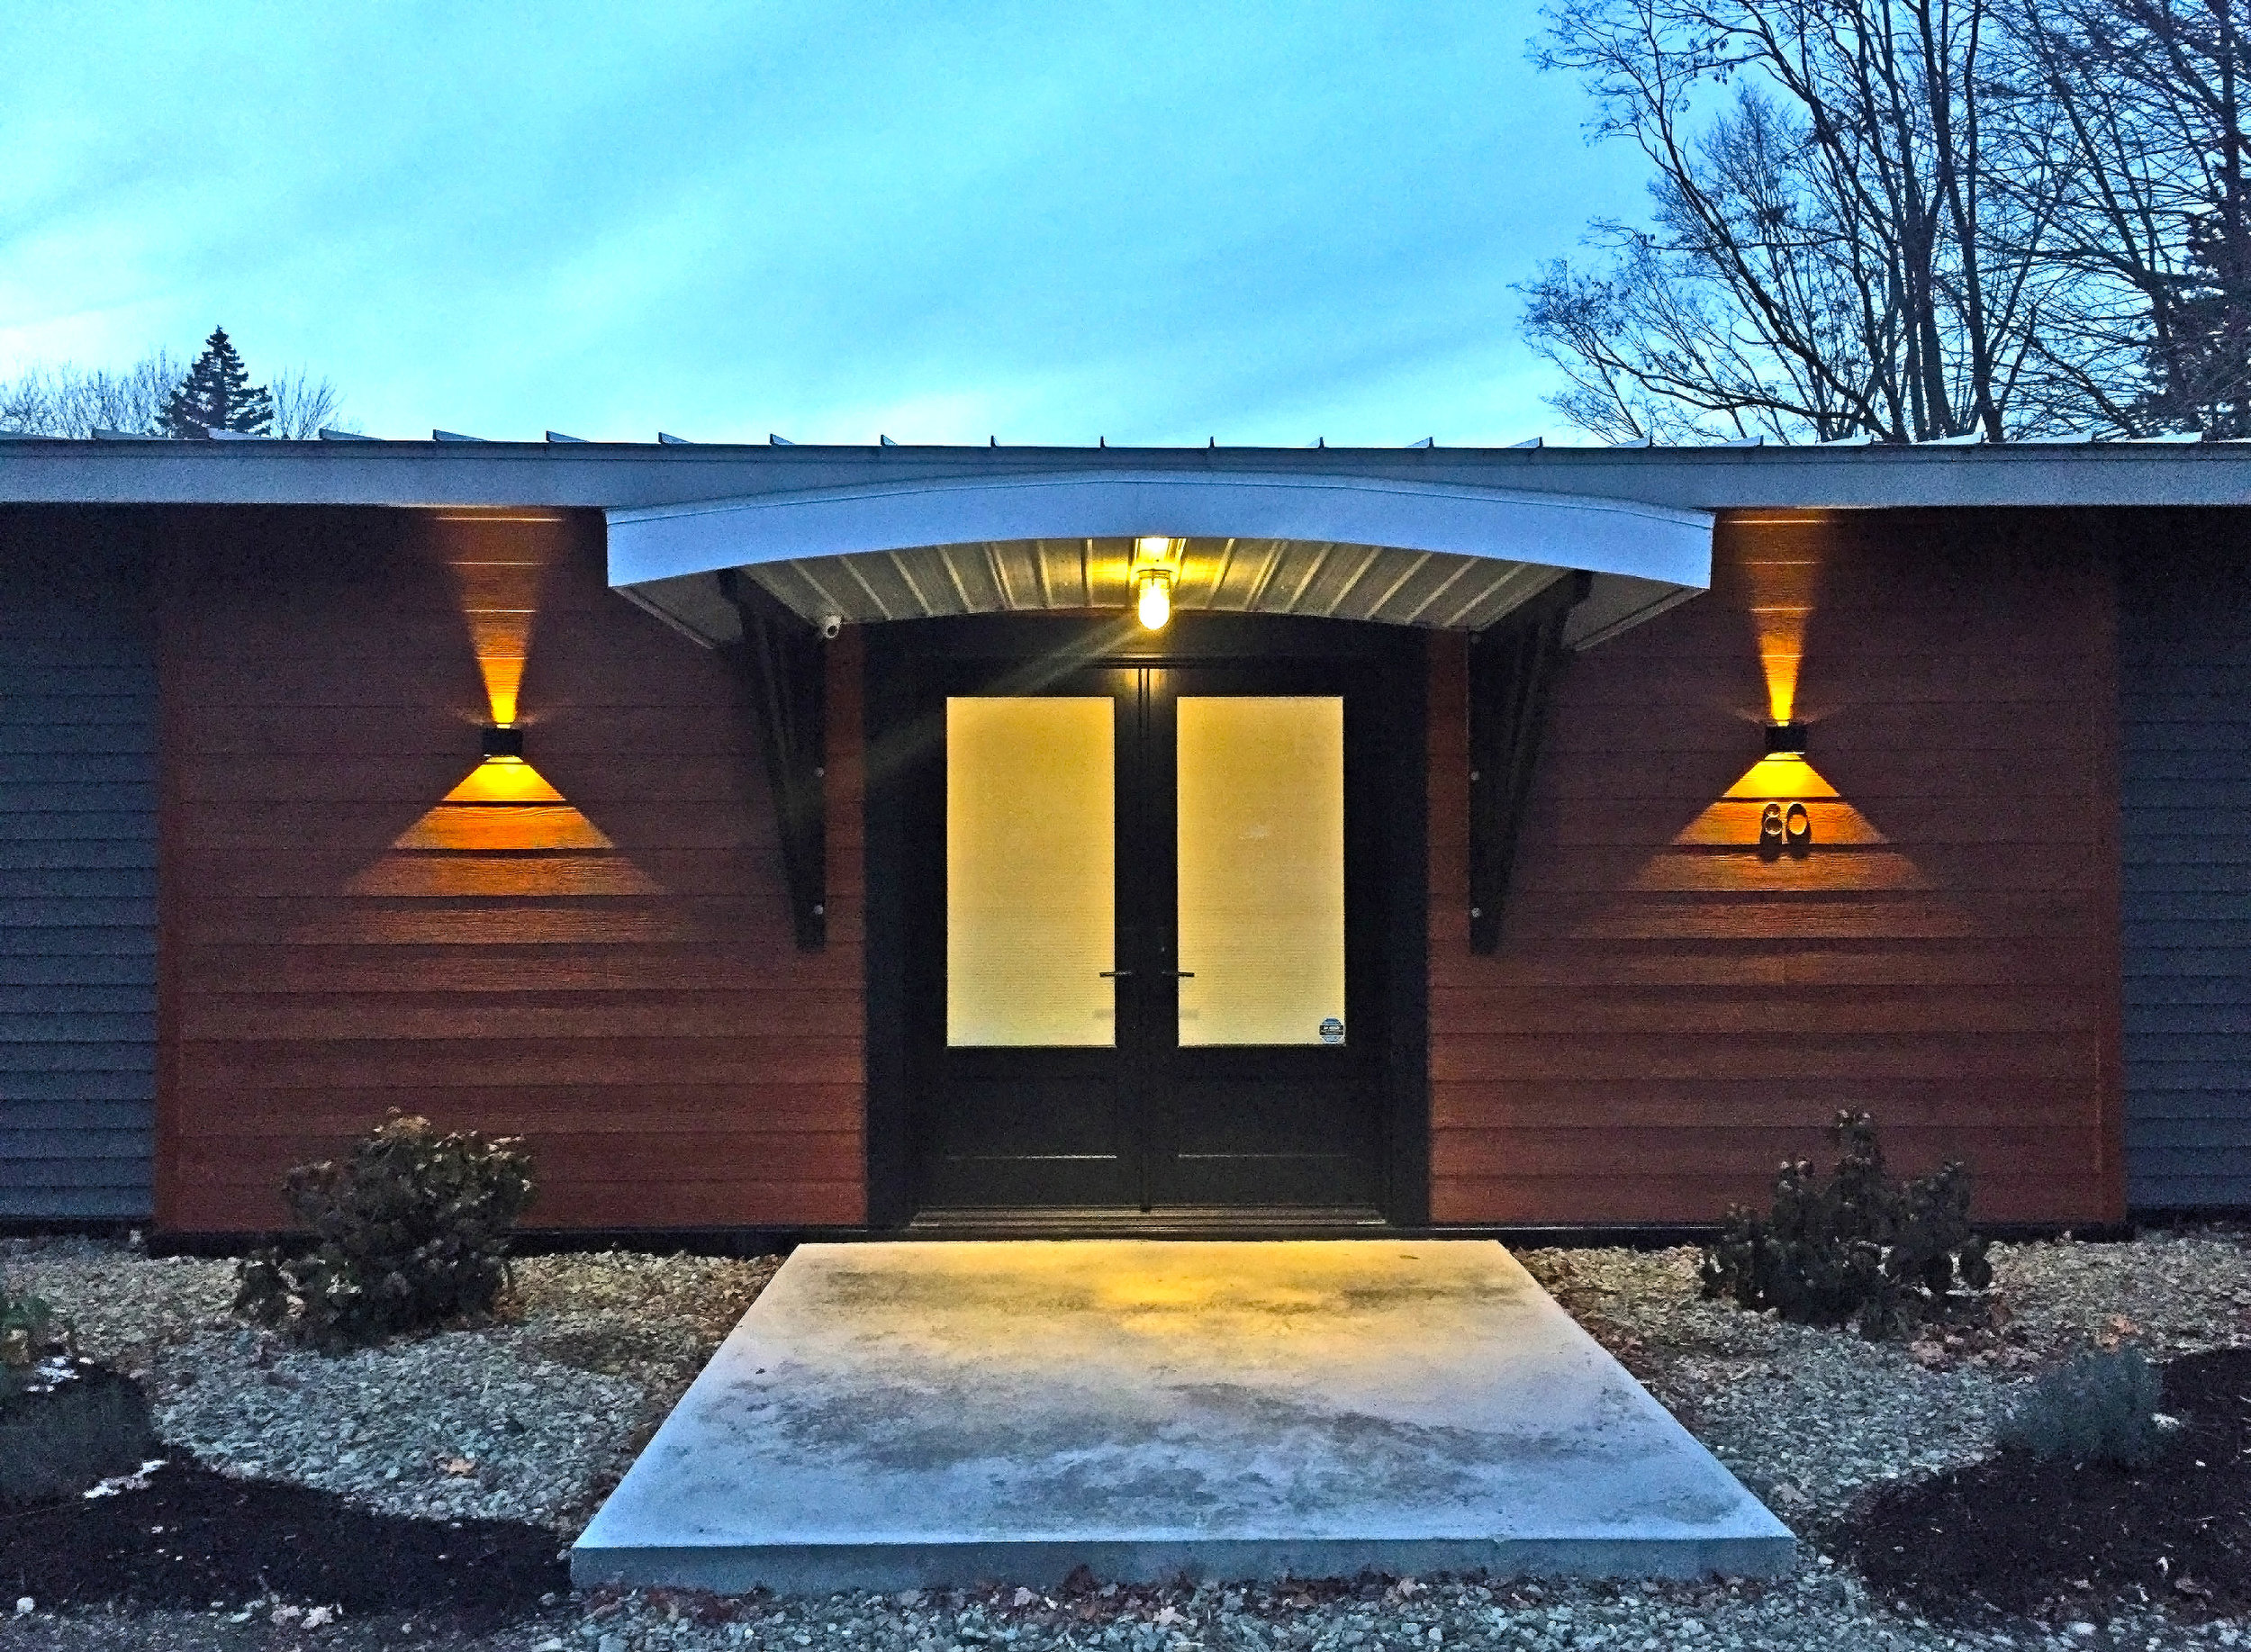 Custom bracketed canopy over double door entry facing the road.